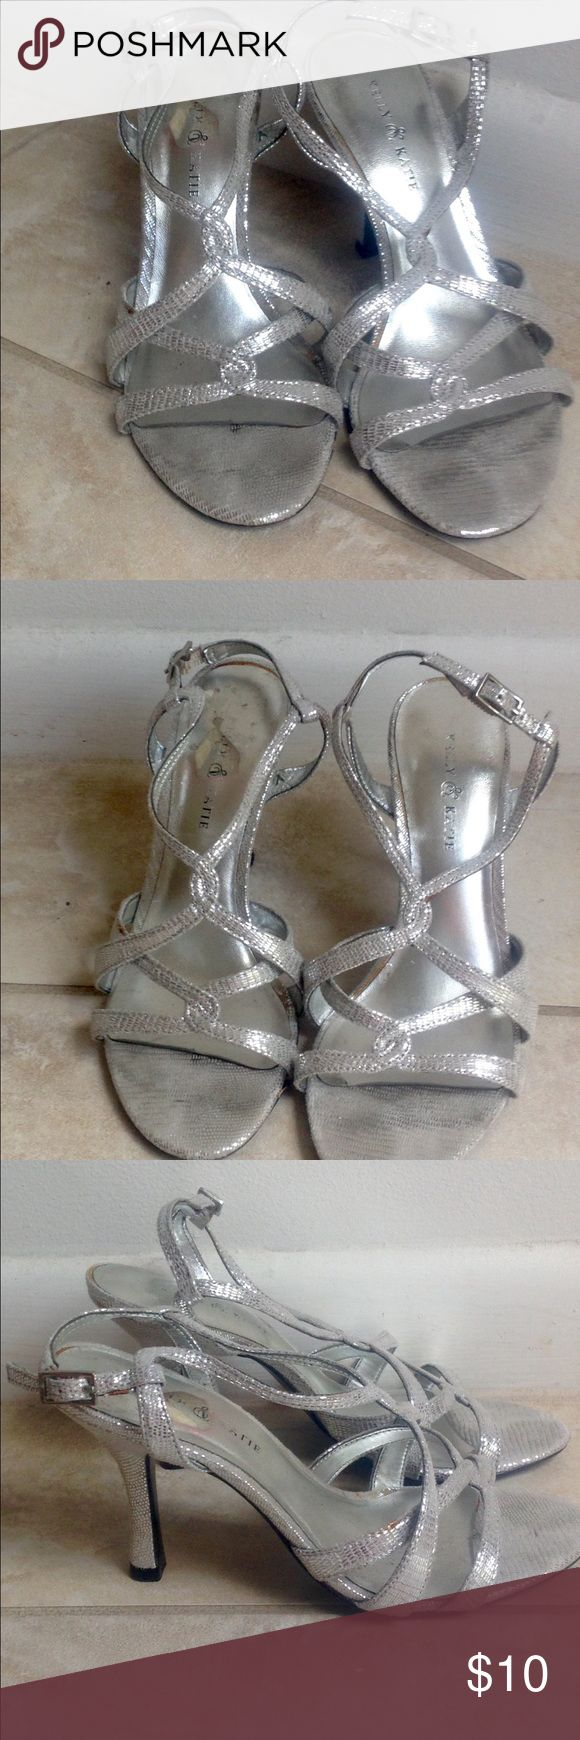 Kelly and Katie silver dress pumps Gently worn Kelly & Katie silver dress sandals. Shoe has an alligator like pattern. Heel height is 3.75 inches. Kelly & Katie Shoes Sandals